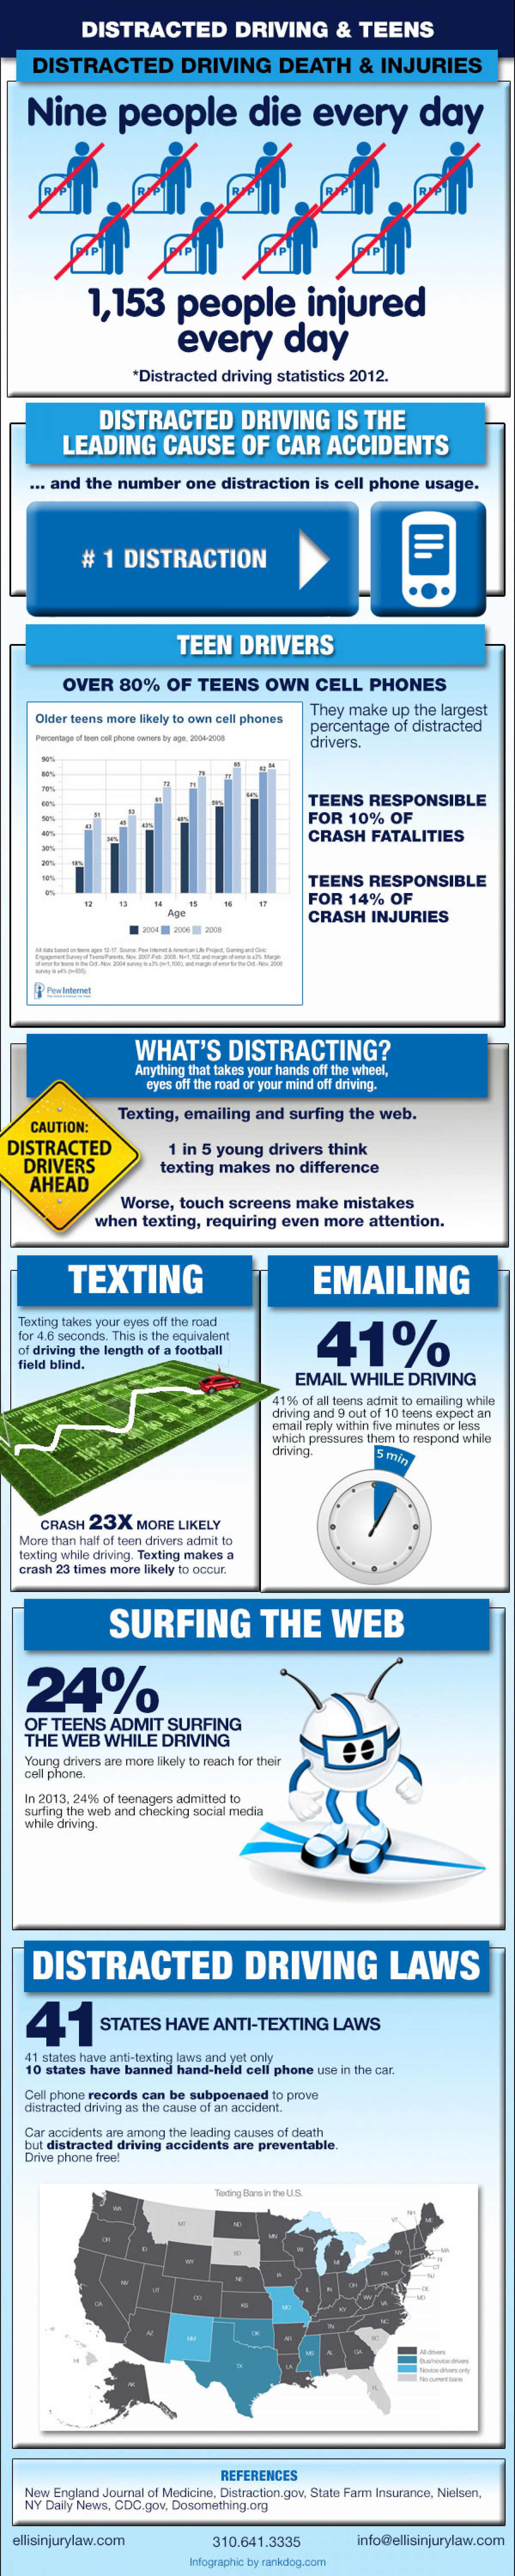 Distracted Driving Infographic